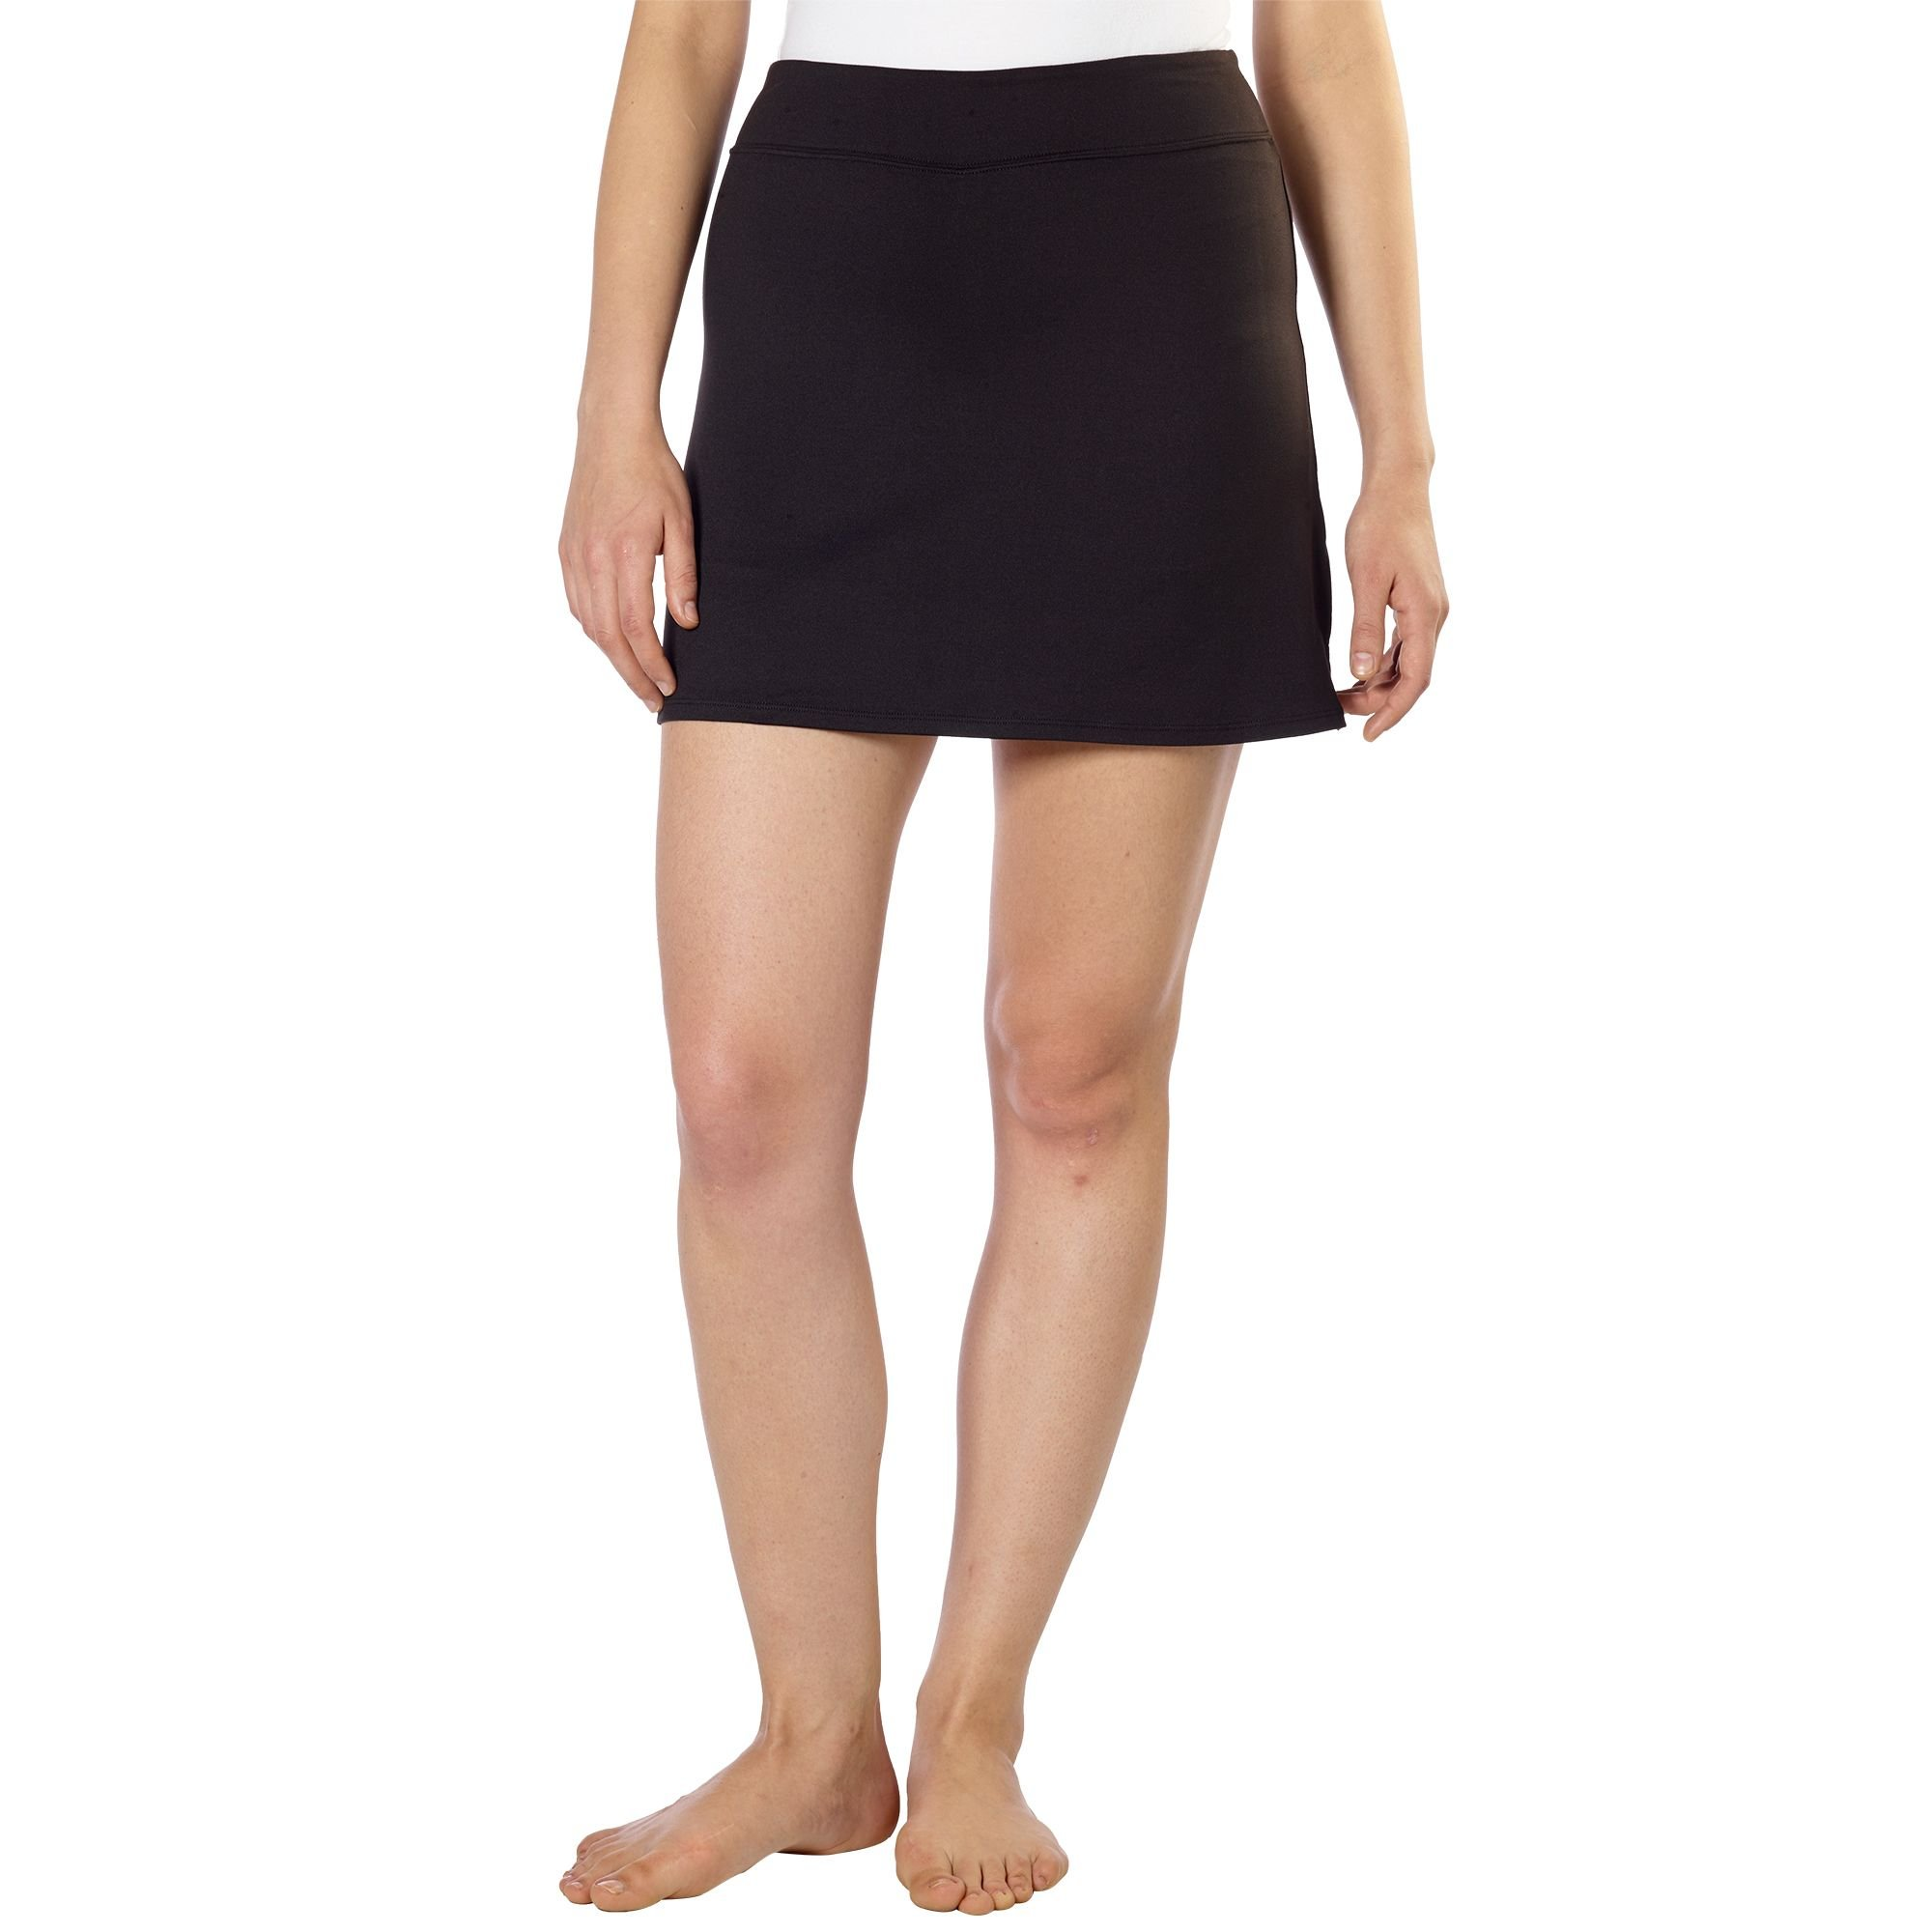 Colorado Clothing Women's Tranquility Skort, X-Large, Black by Colorado Clothing